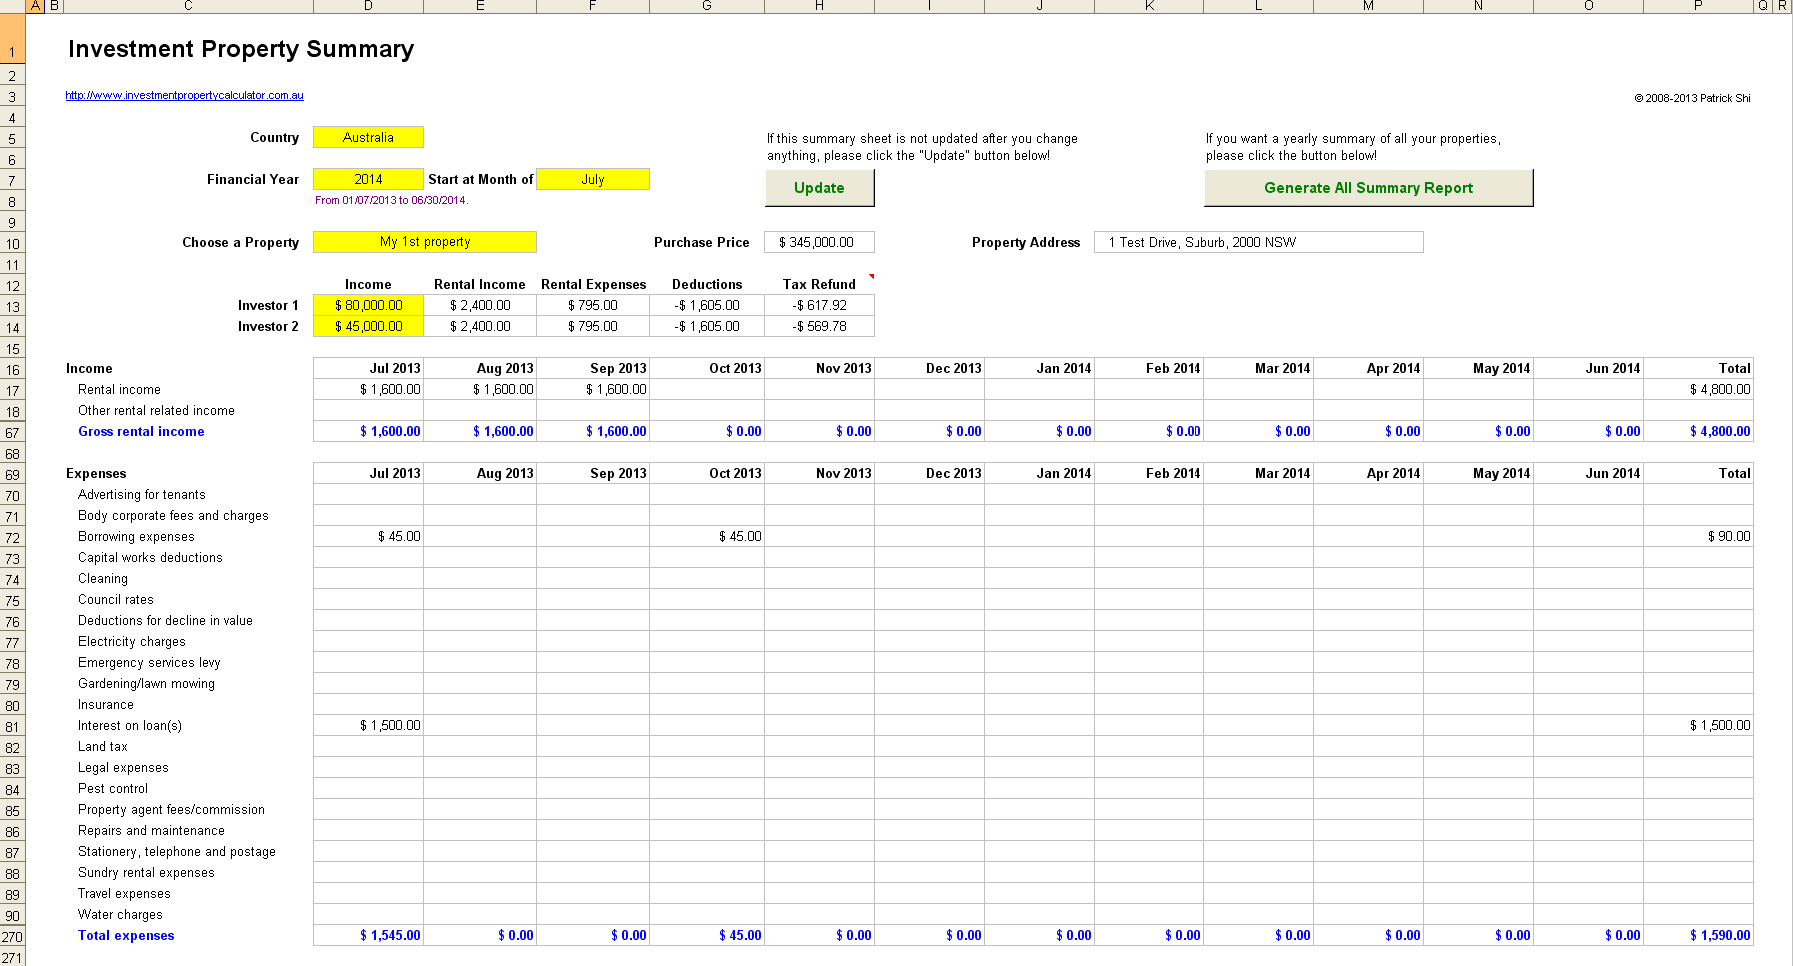 Rental Cash Flow Spreadsheet Spreadsheet Downloa Rental Cash Flow Spreadsheet Rental Cash Flow